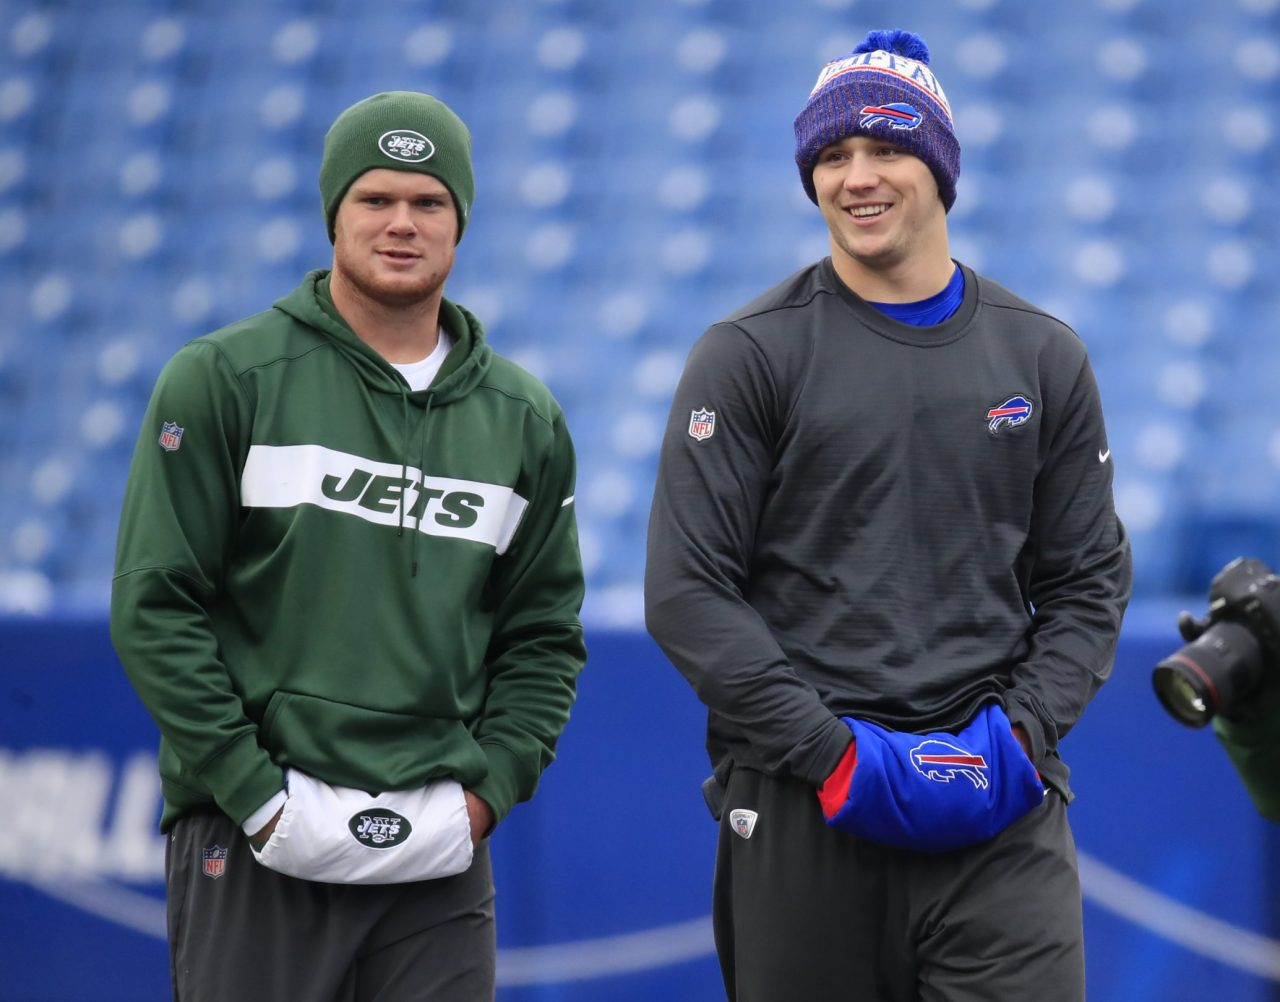 Schedule leaks: Bills to reportedly open, close season against Jets